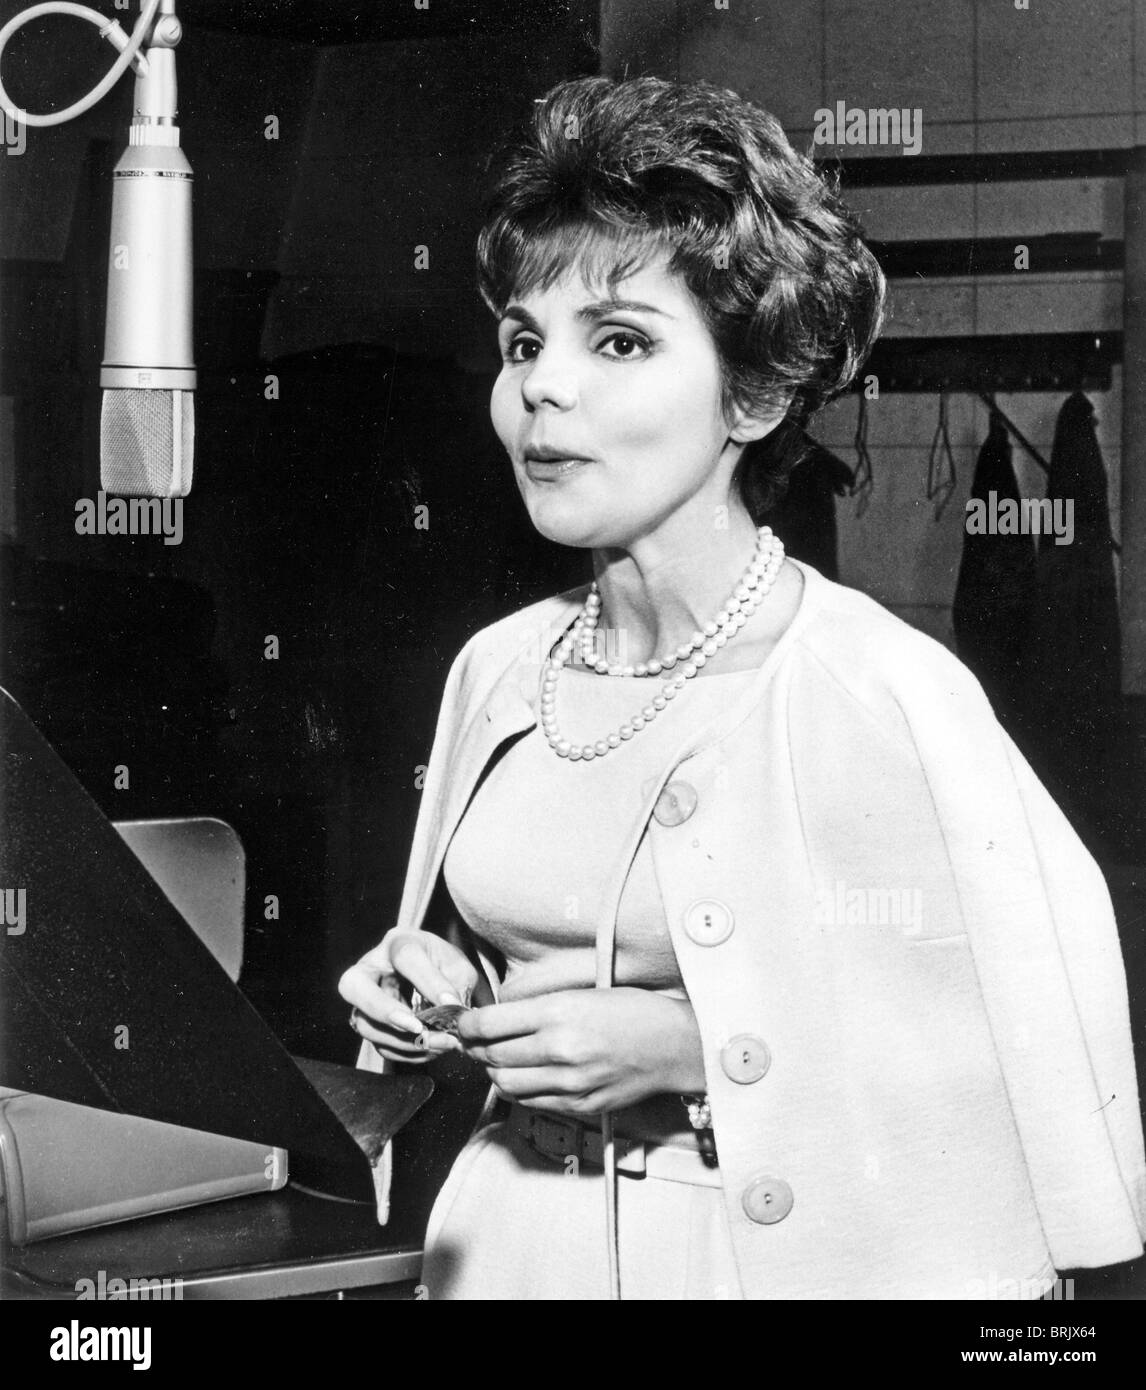 TERESA BREWER (1931-2007) US pop singer - Stock Image